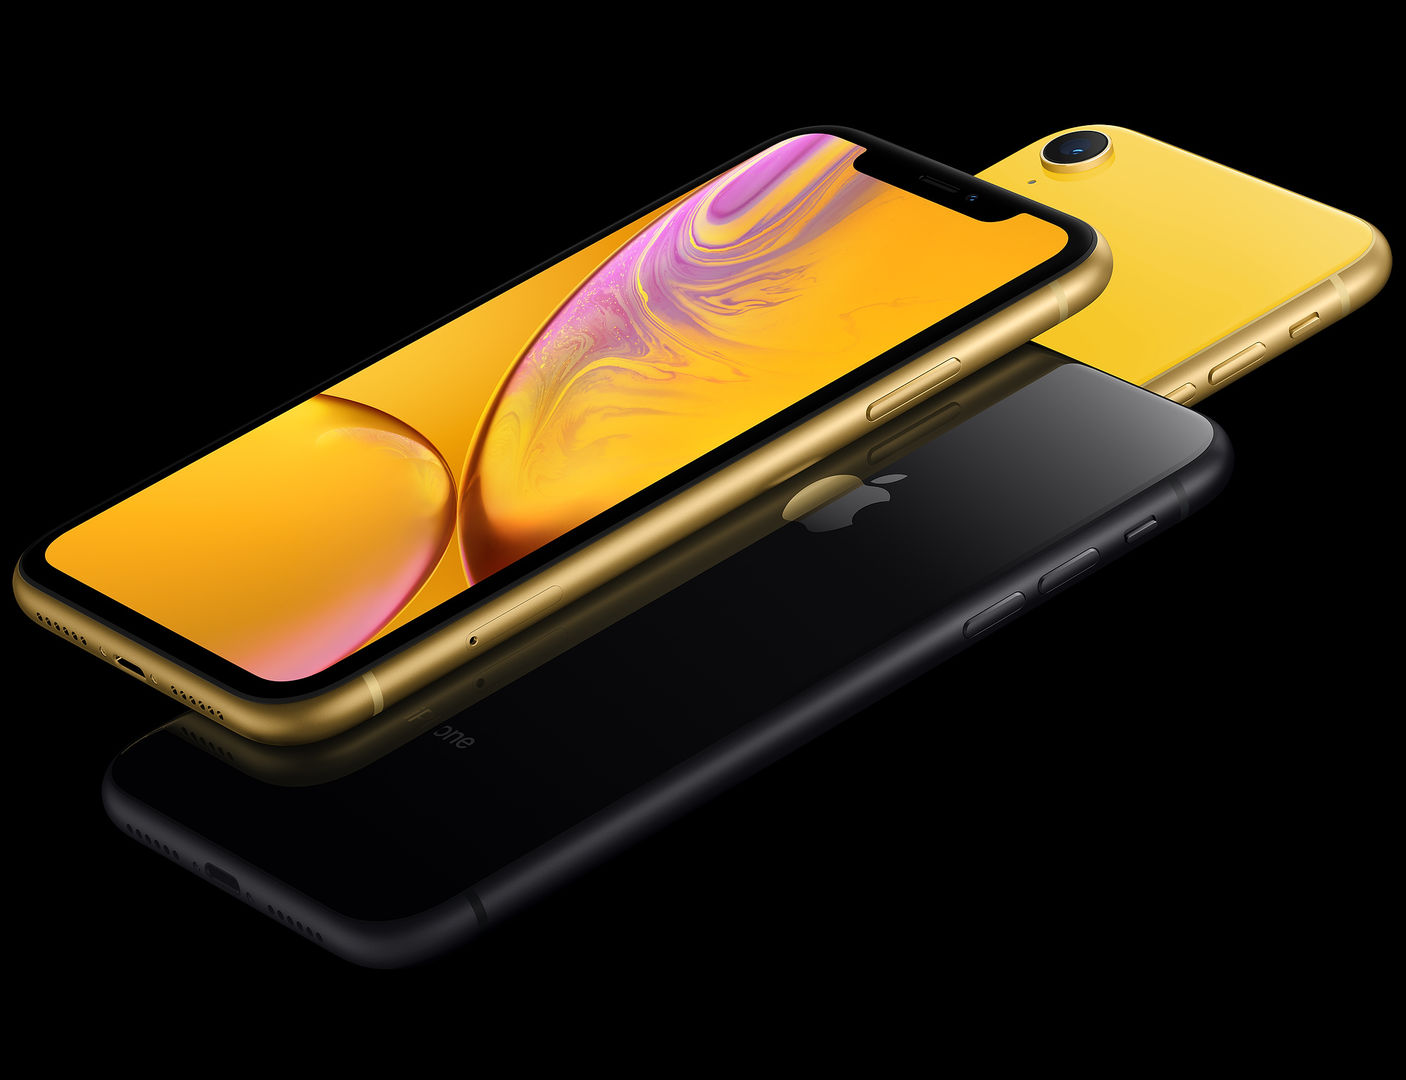 iPhone has launched 3 new models in 2018 with its specifications and features | Yogesh Gaur